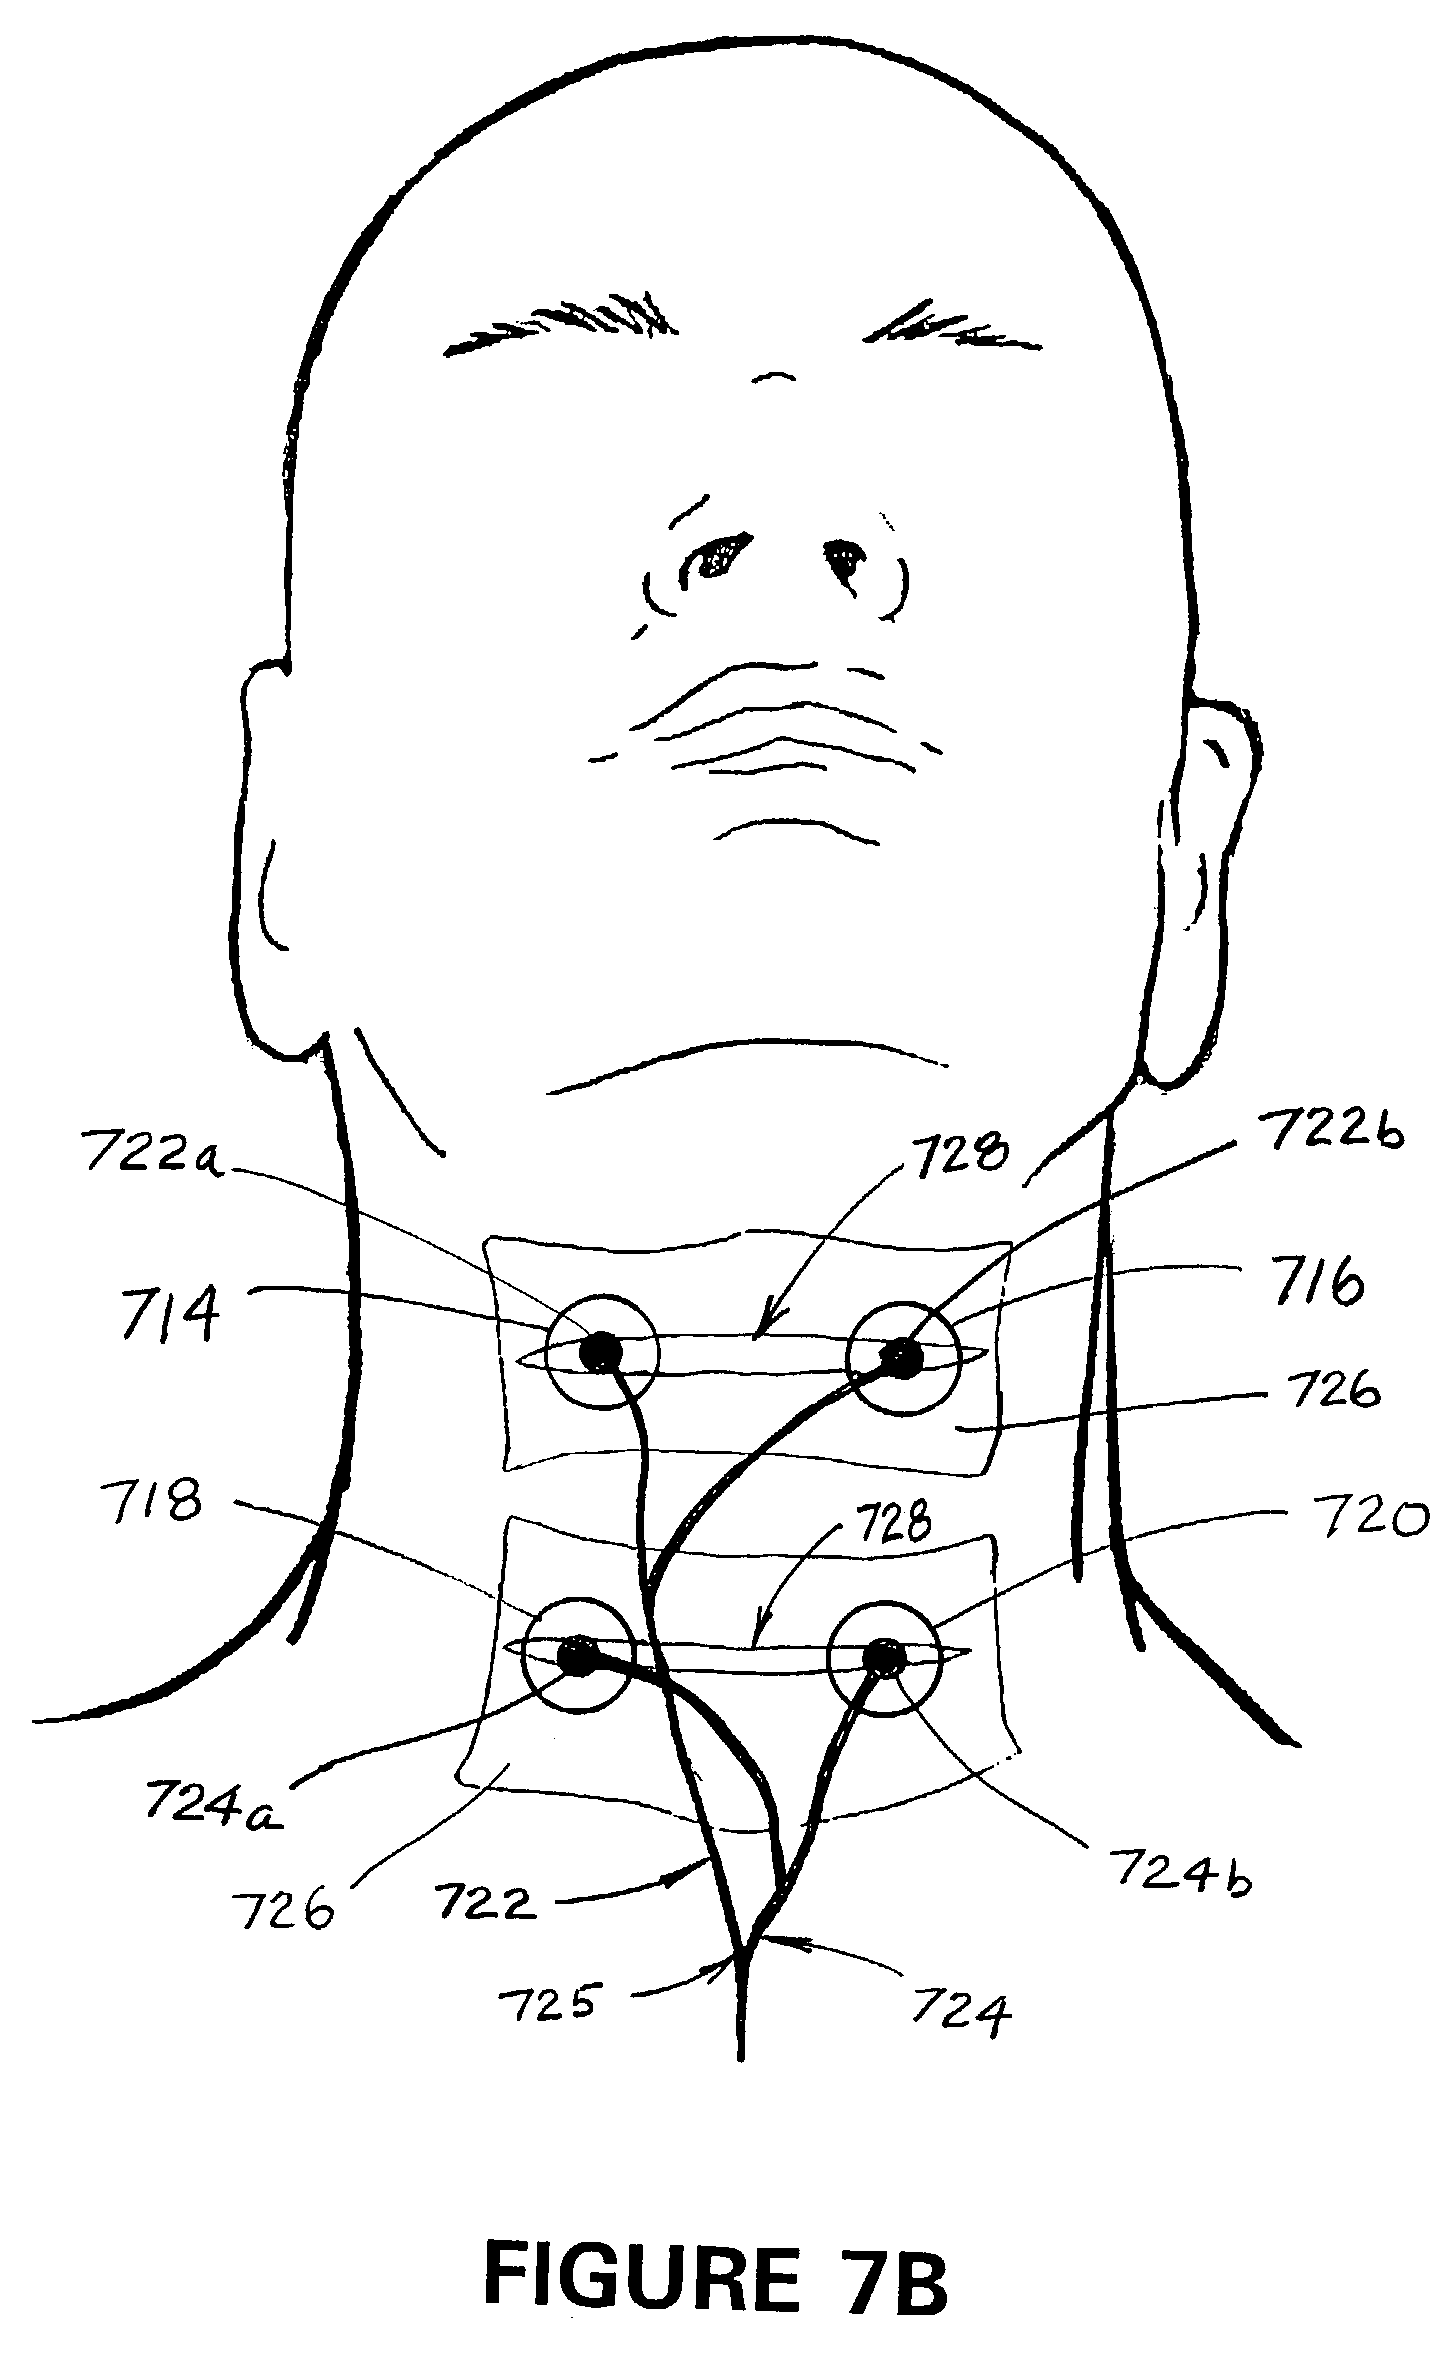 For Electrical Stimulation Pad Placement